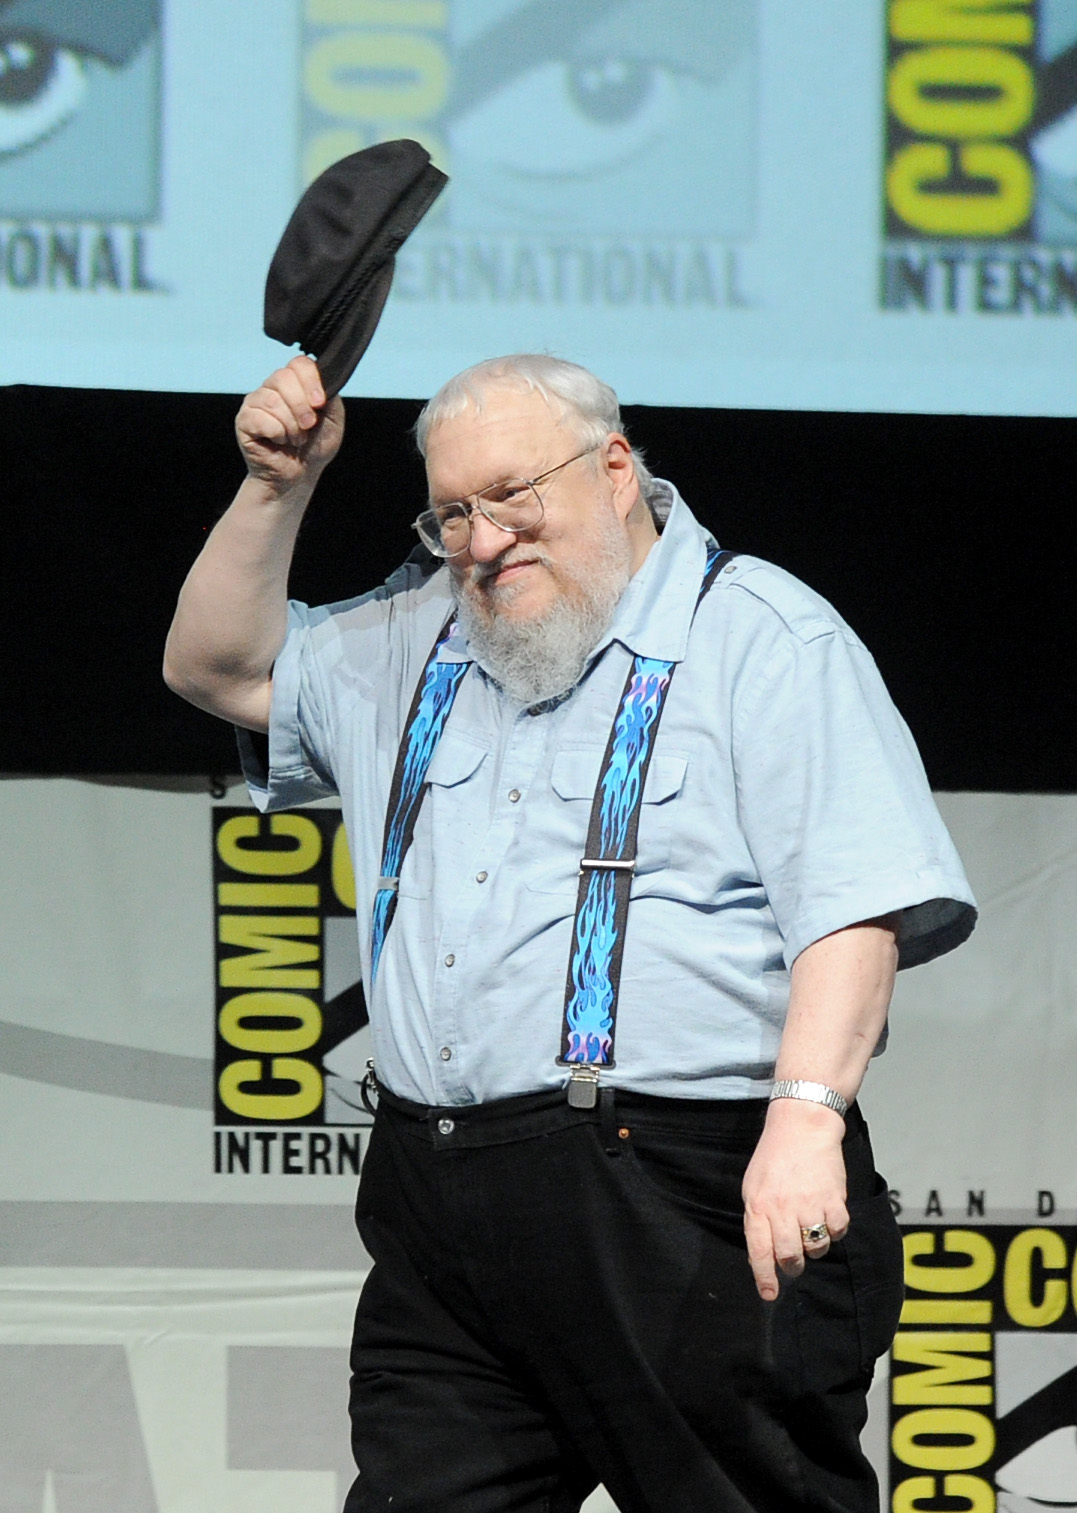 Writer George R.R. Martin speaks onstage during the  Game Of Thrones  panel during Comic-Con International 2013 at the San Diego Convention Center.